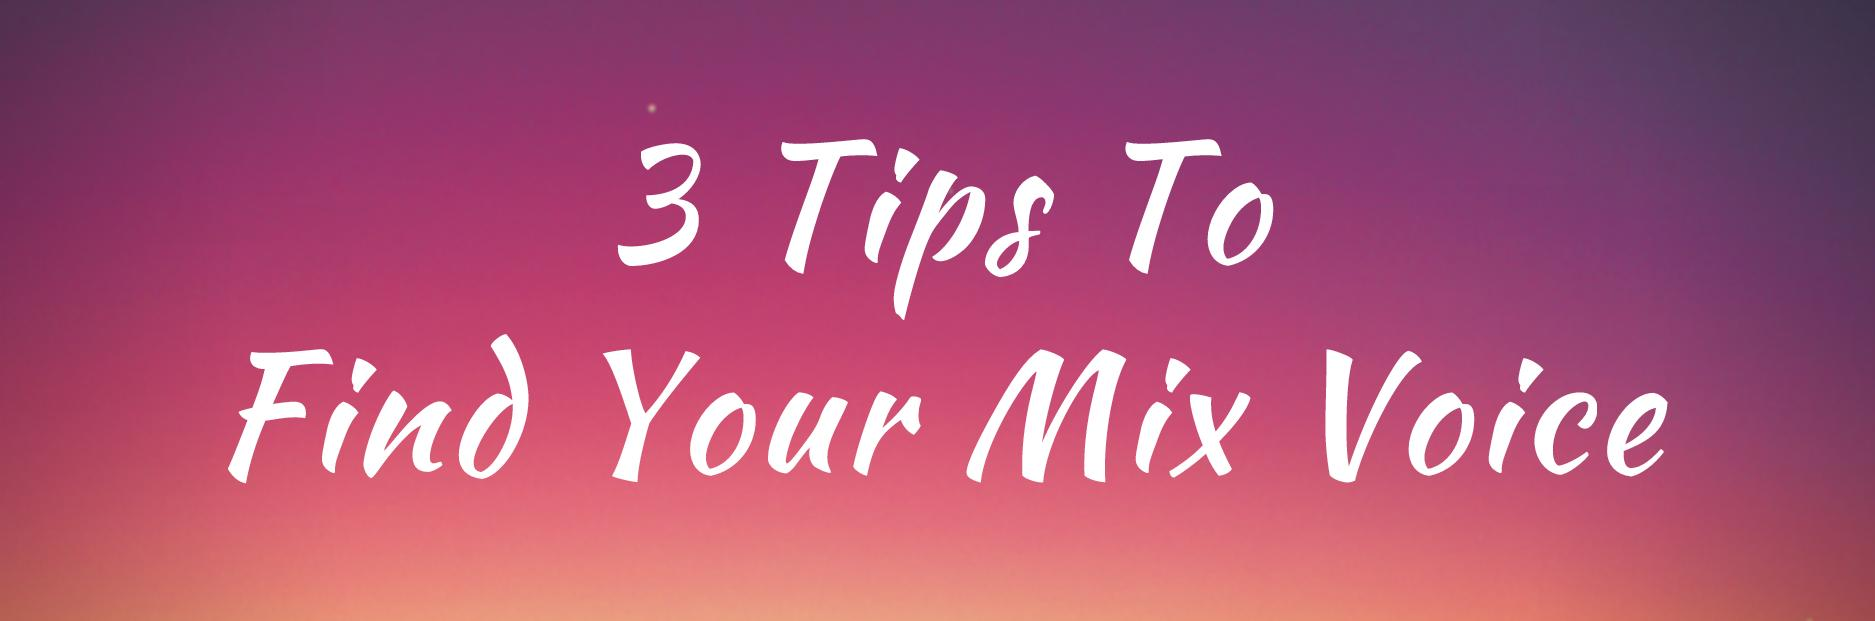 3 Tips To Find Your Mix Voice, by certified vocal coach Roxie Francis, I Heart My Voice